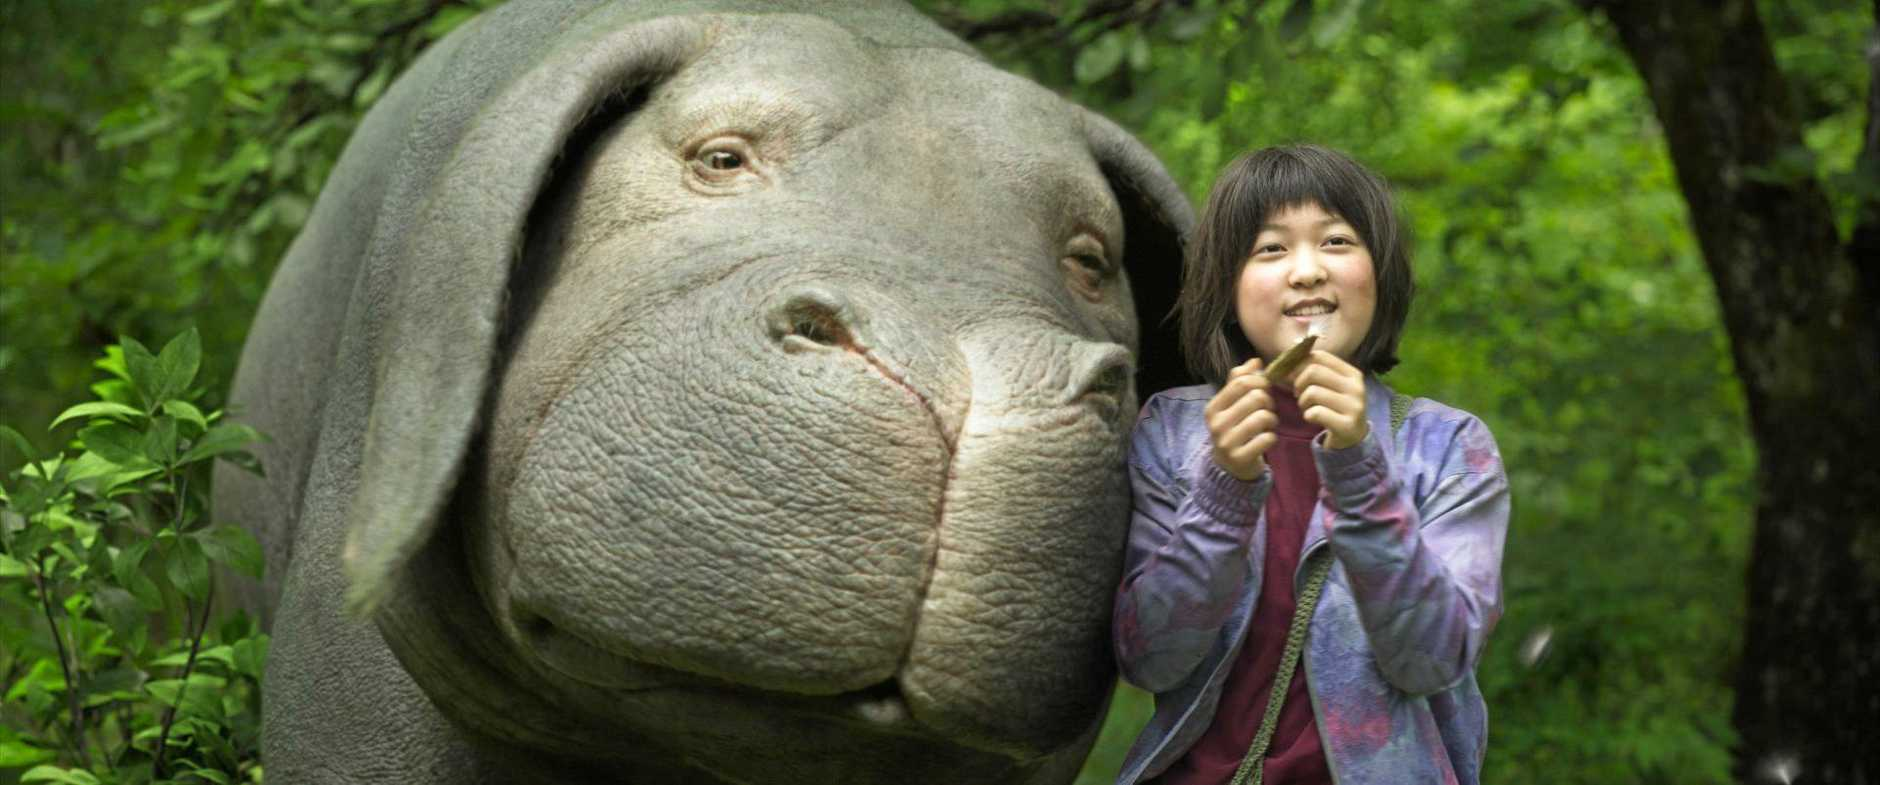 An Seo Hyun in a scene from the Netflix movie Okja. Supplied by Netflix.